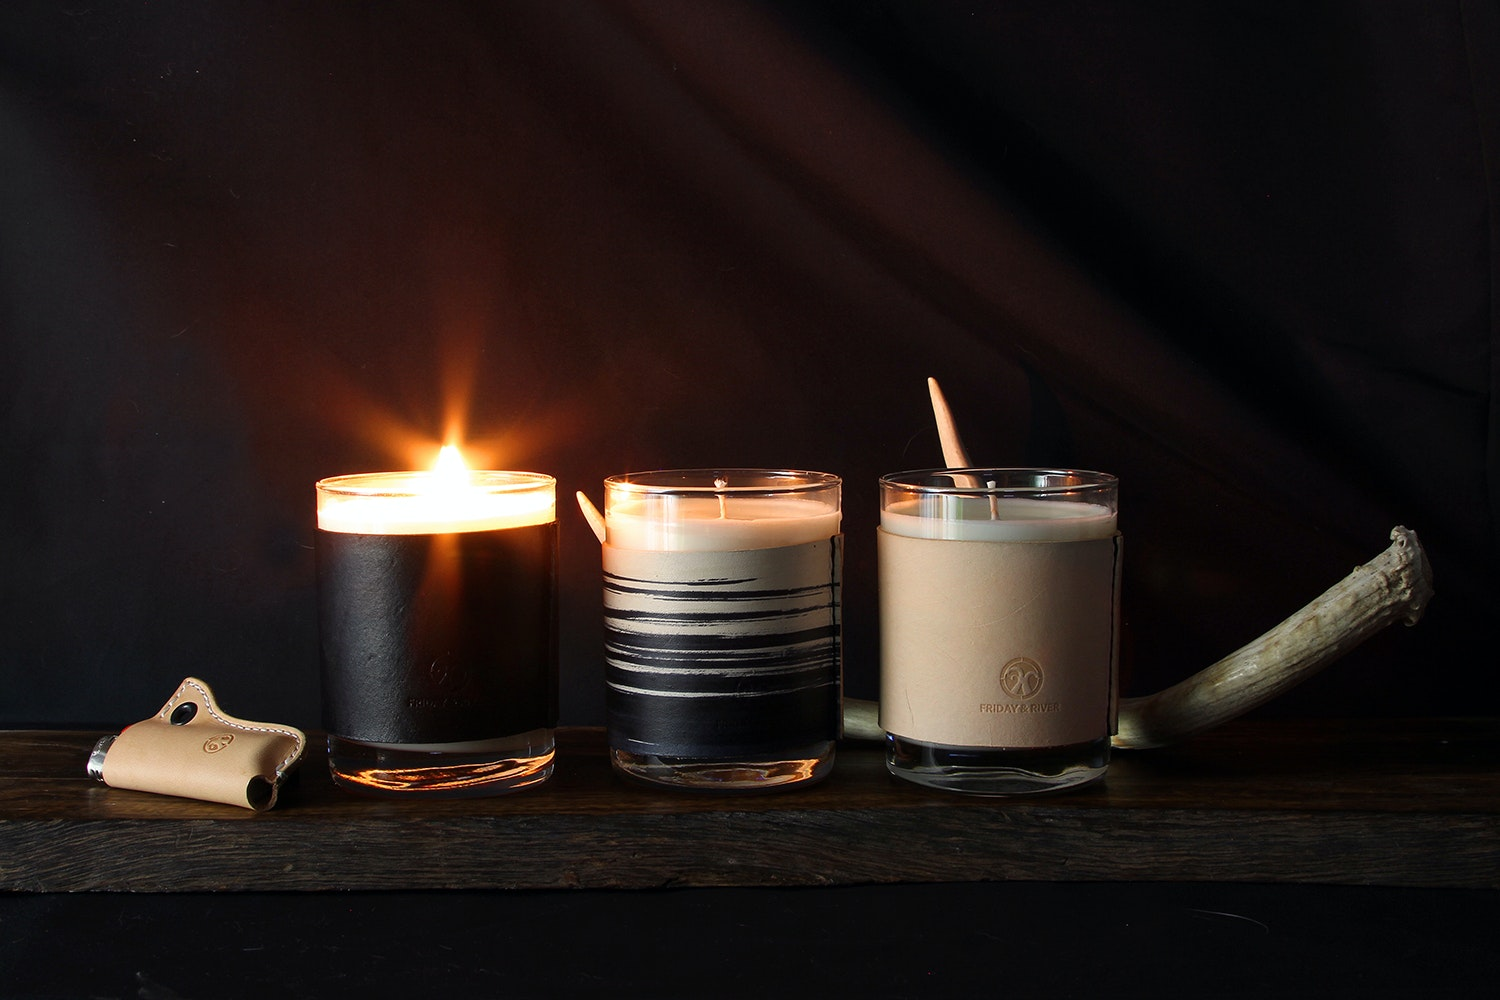 Friday & River Candles